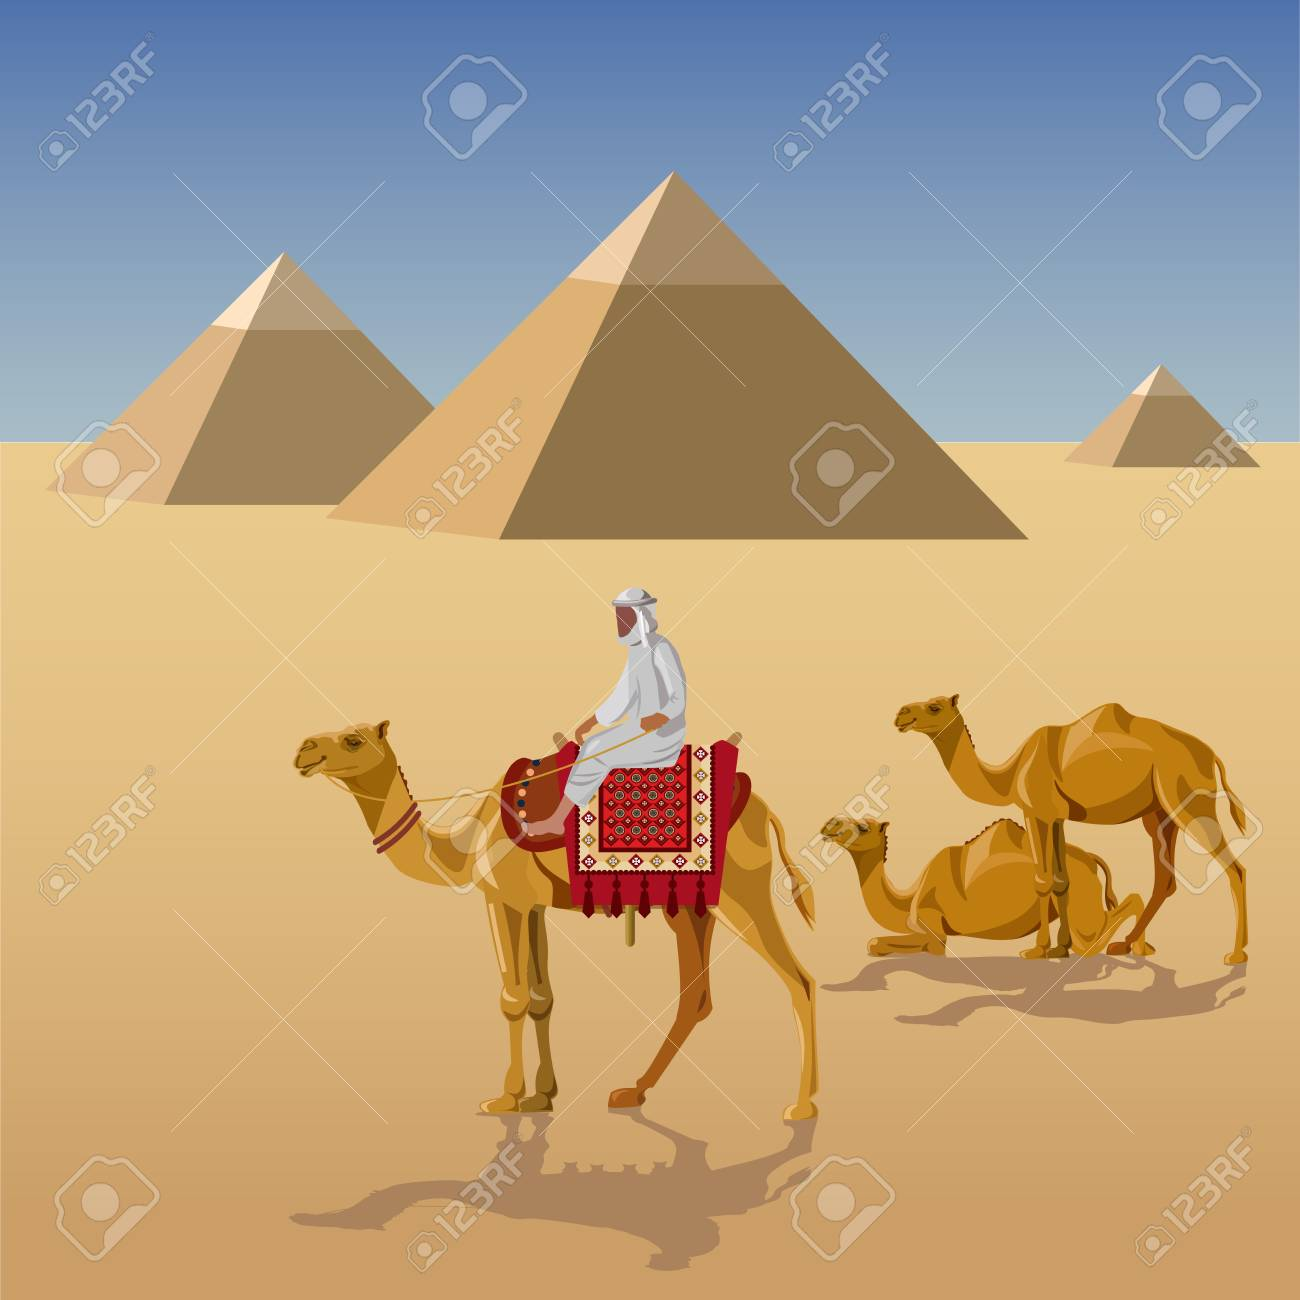 Camelcade in desert with egyptian pyramids. Vector illustration - 90907866